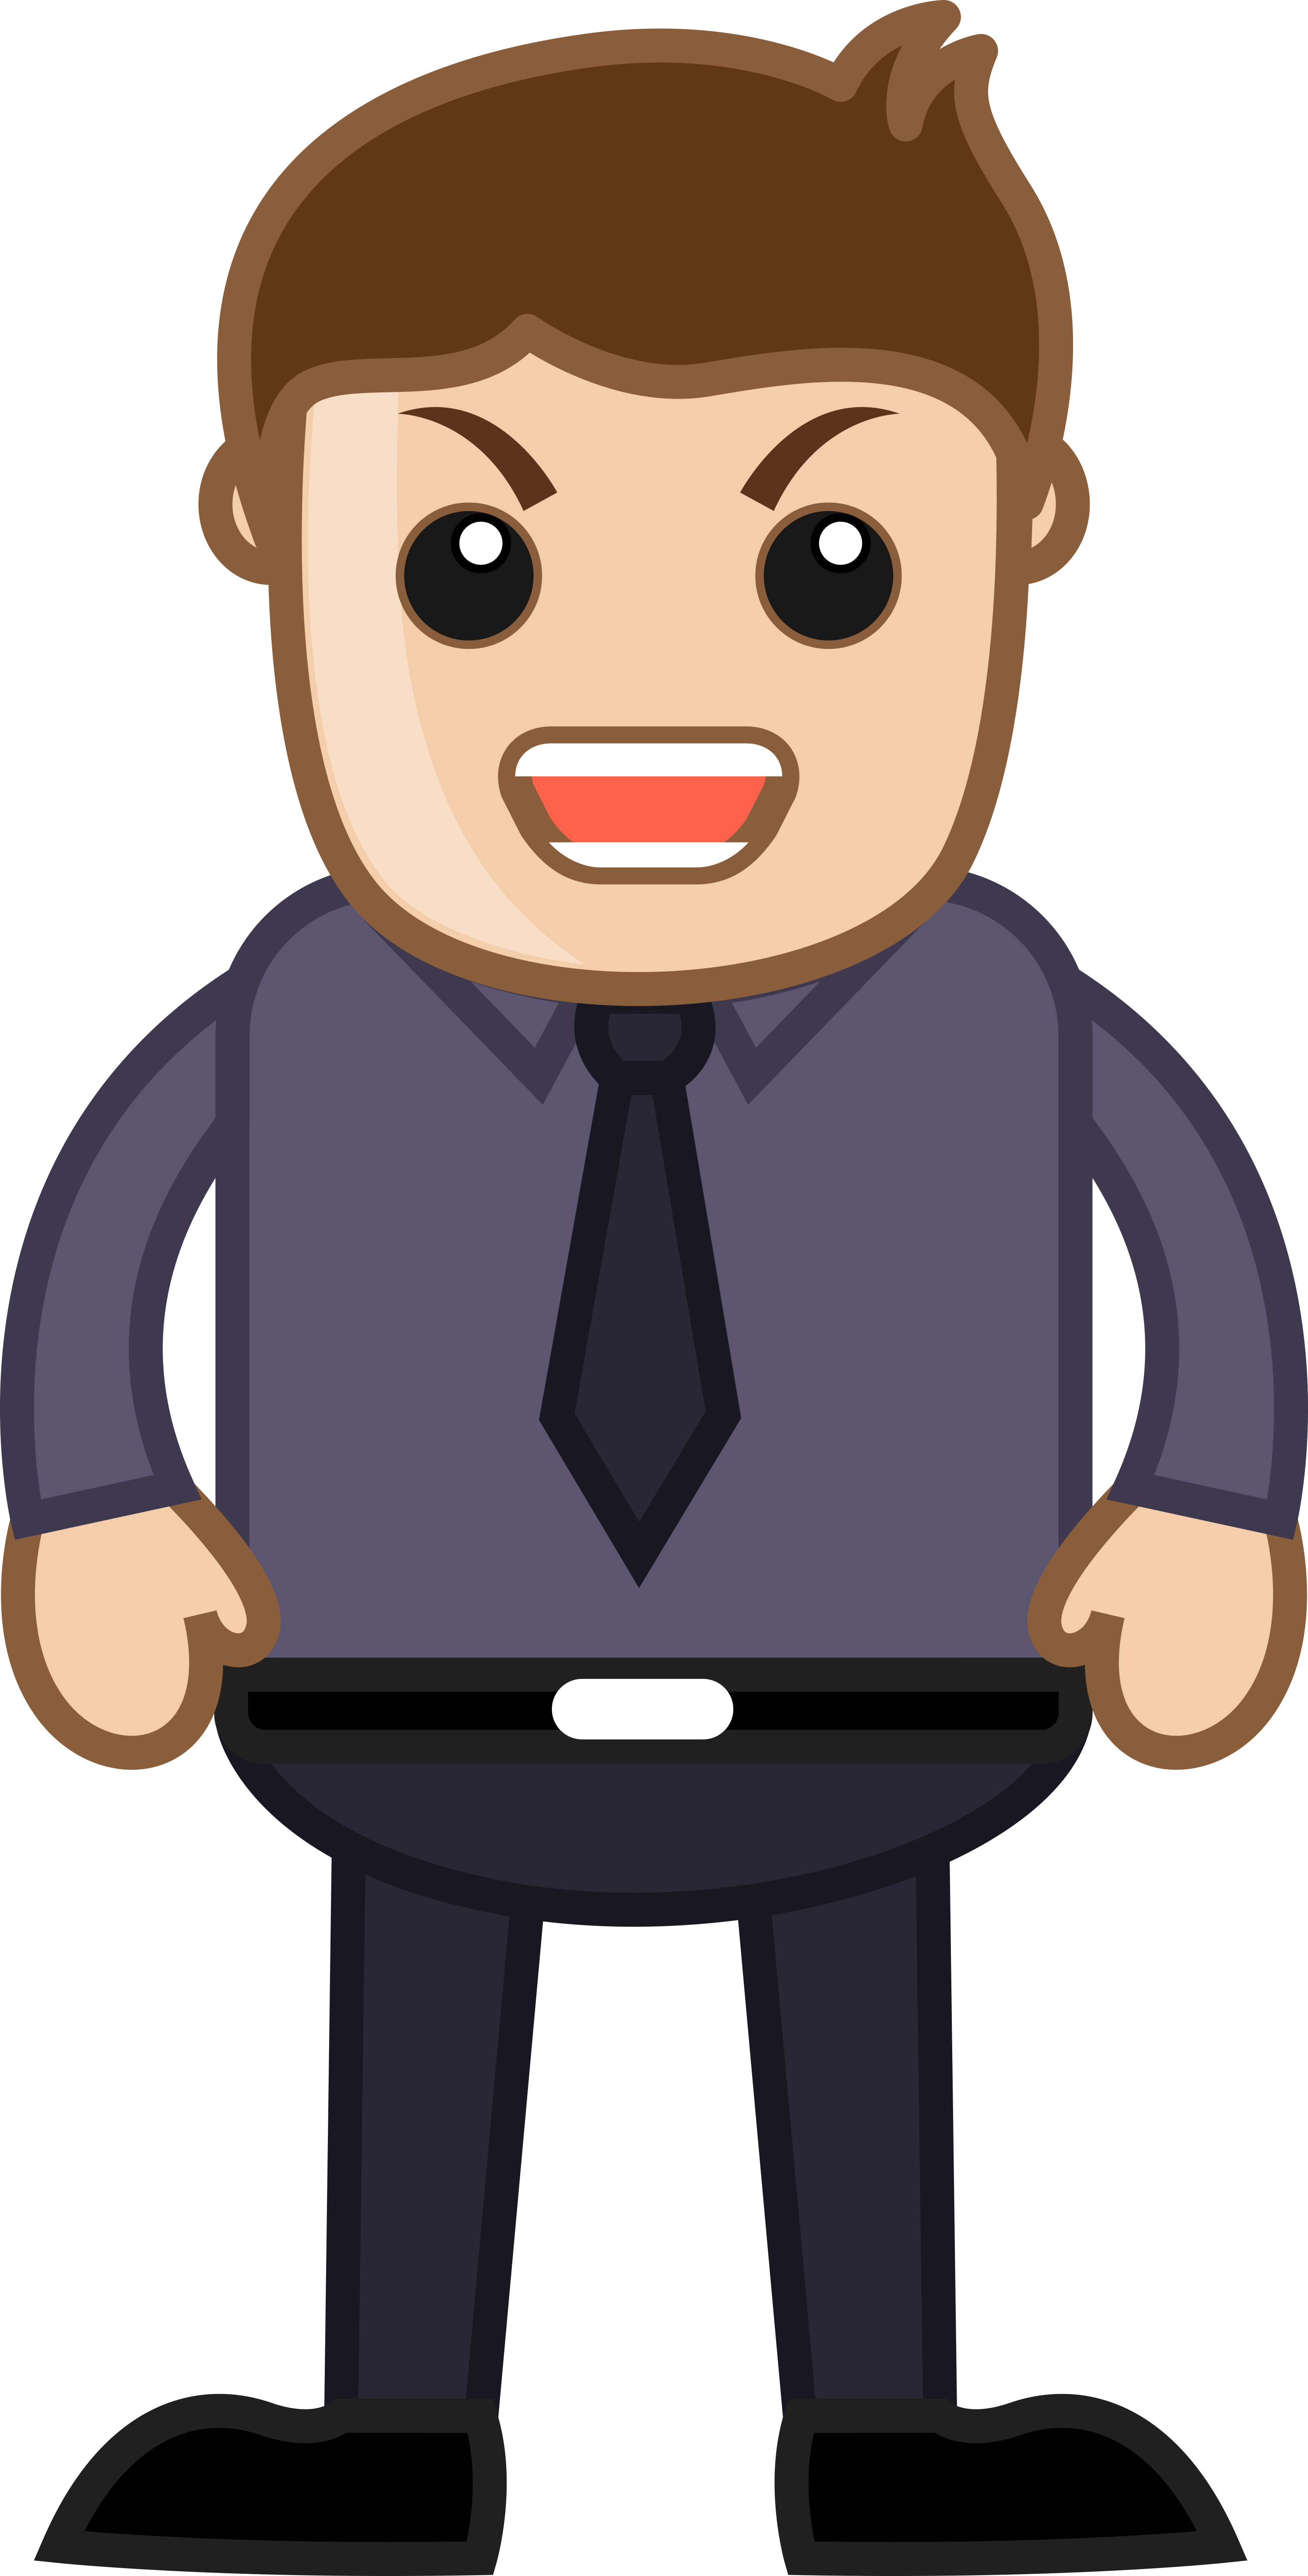 Angry man corporate cartoon. Working clipart office work